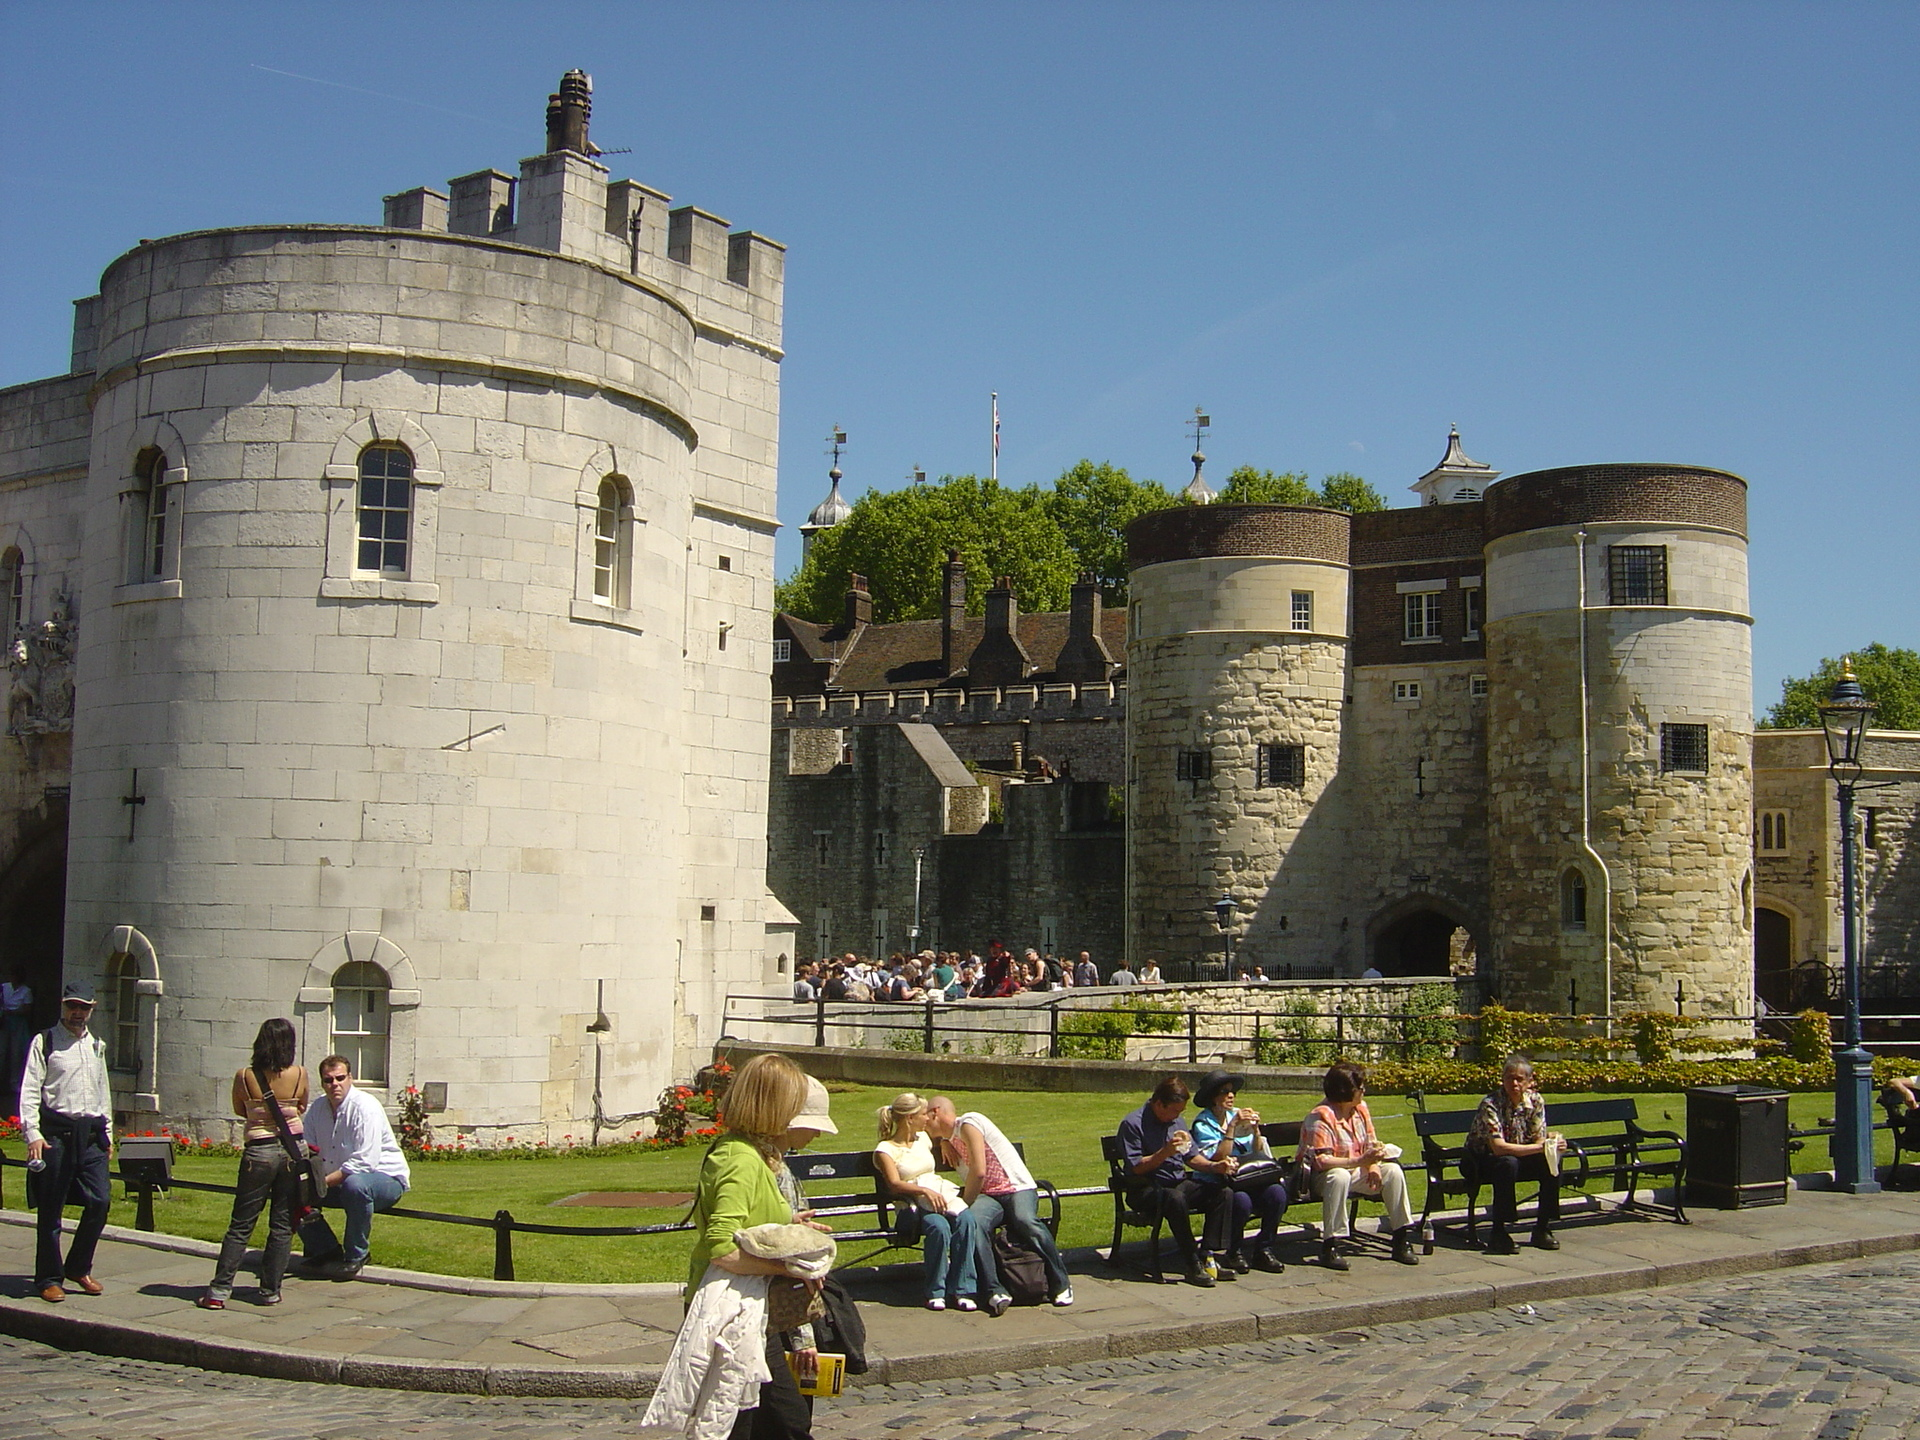 Tower-of-London-castles-154397_1920_1440